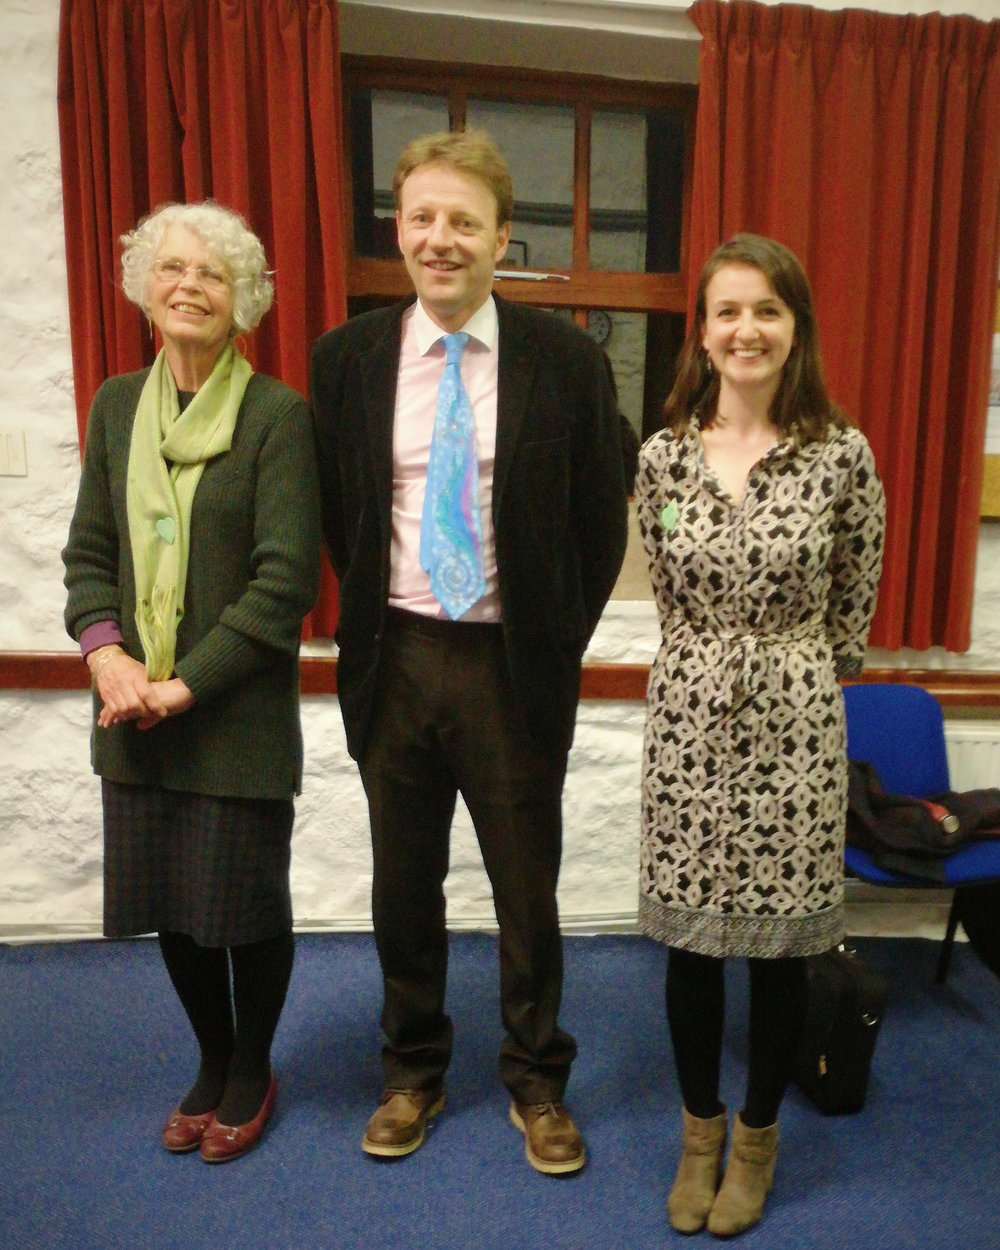 Pippa Stilwell (left) with Derek Thomas MP and Sarah Robinson